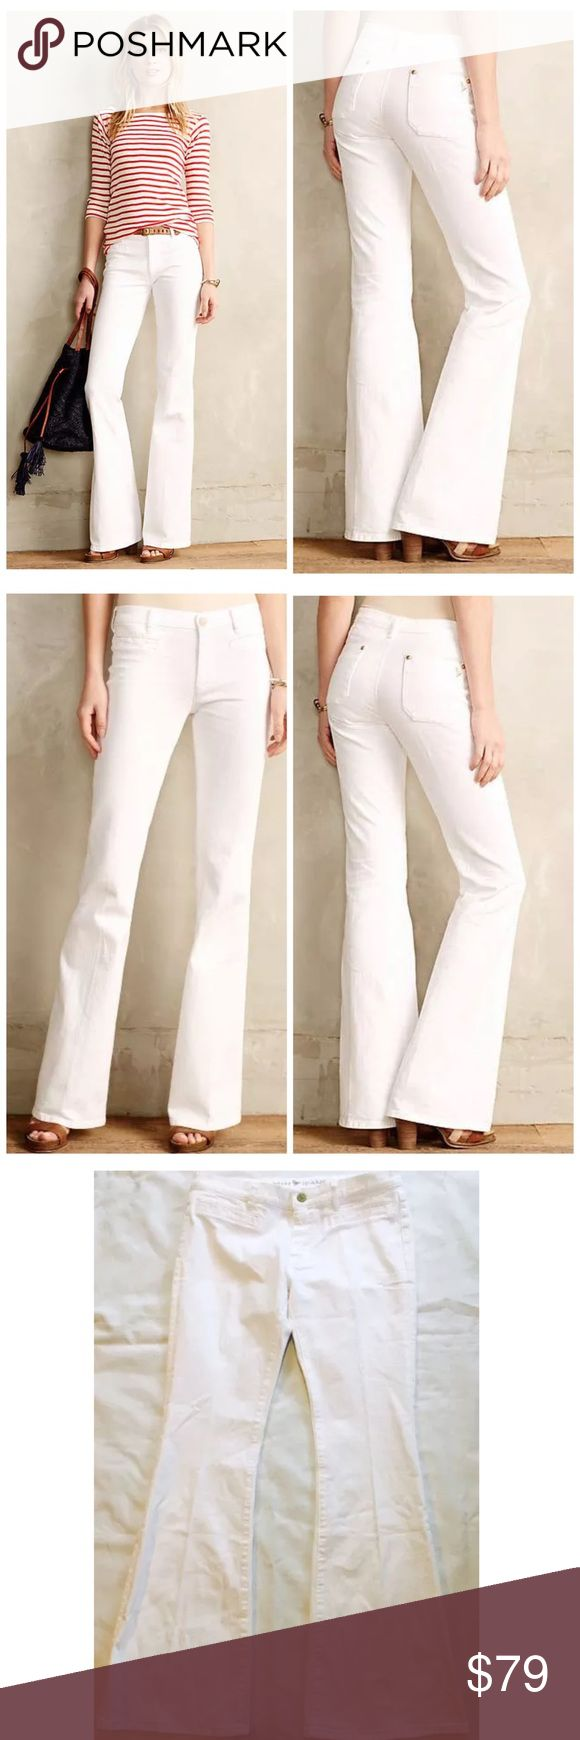 """ANTHROPOLOGIE MIH CASABLANCA PETITE FLARE JEANS 30 ANTHROPOLOGIE MIH CASABLANCA PETITE FLARE JEANS IN WHITE  $218 RETAIL PRICE, new without tag, inner label marked, perfect condition except for minor dust marks from store handling that should wash right out  Petite exclusive Cotton, elastane Front welt, back patch pockets Machine wash Imported Style No. 4122267190145 Dimensions 32"""" inseam 8"""" mid rise; 10"""" ankle 16"""" flat across waist 21"""" leg opening Anthropologie Jeans Flare & Wide Leg"""